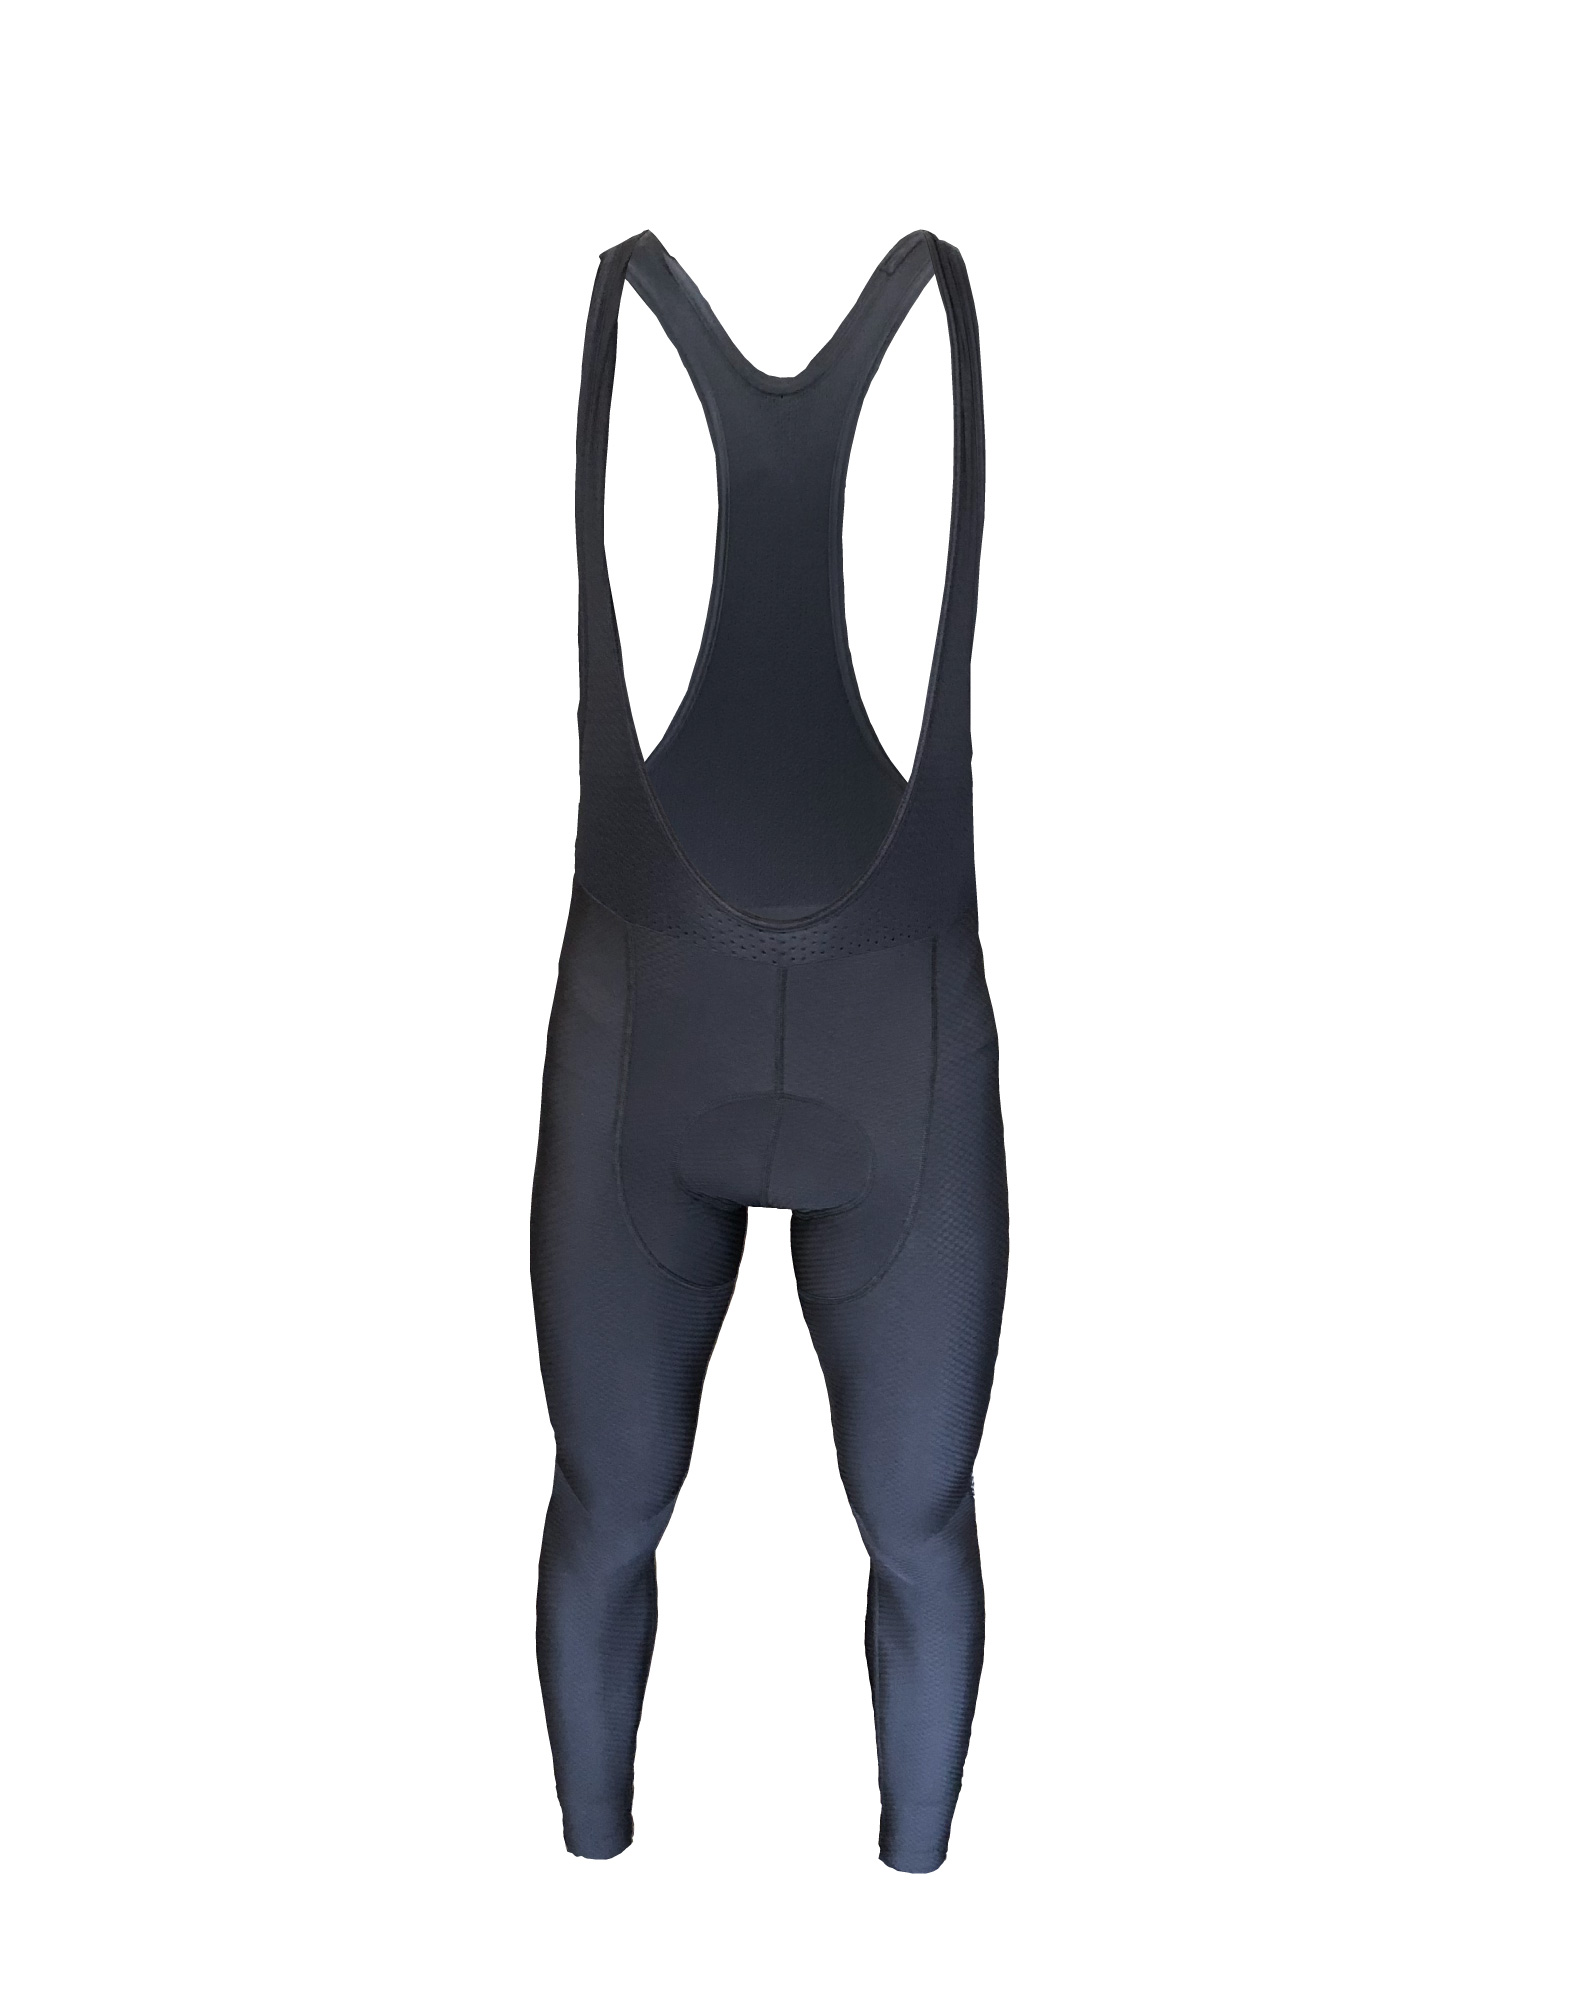 WINTER BIBSHORTS AND TIGHTS